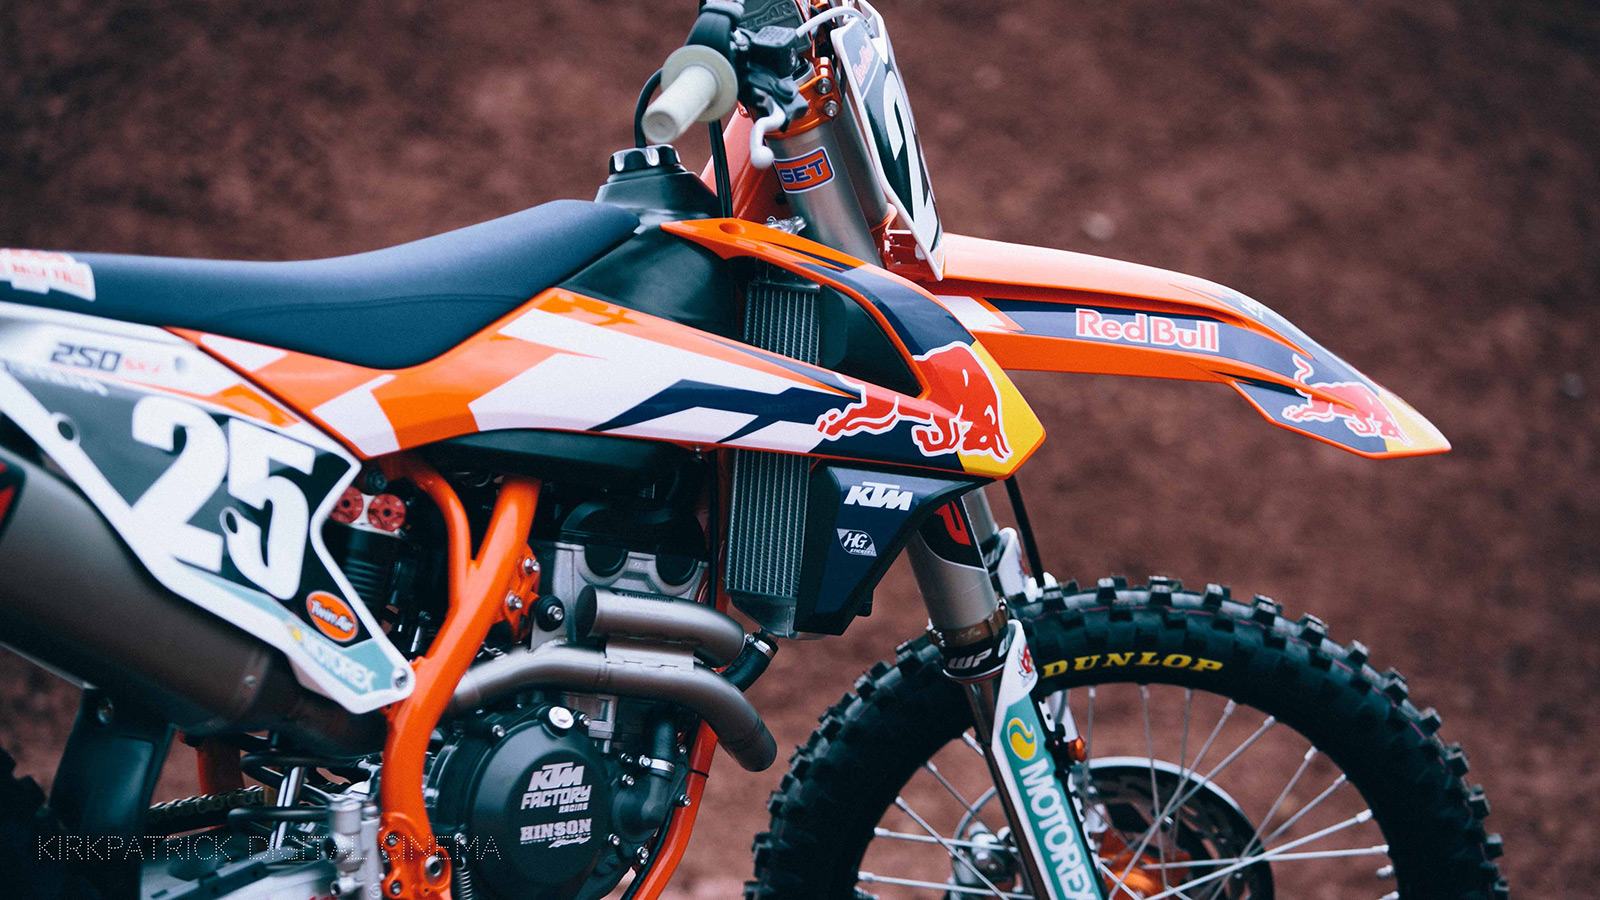 Thermostat C Wire Explained moreover Mayfield tshirts in addition Motocross Star Chad Reed Rides Mountain Bikes To Top Of Supercross Podium moreover 1969 Ford Mustang Mach 1 Front Angl likewise Kawasaki W800 Retro Motorcycle. on kawasaki oil display